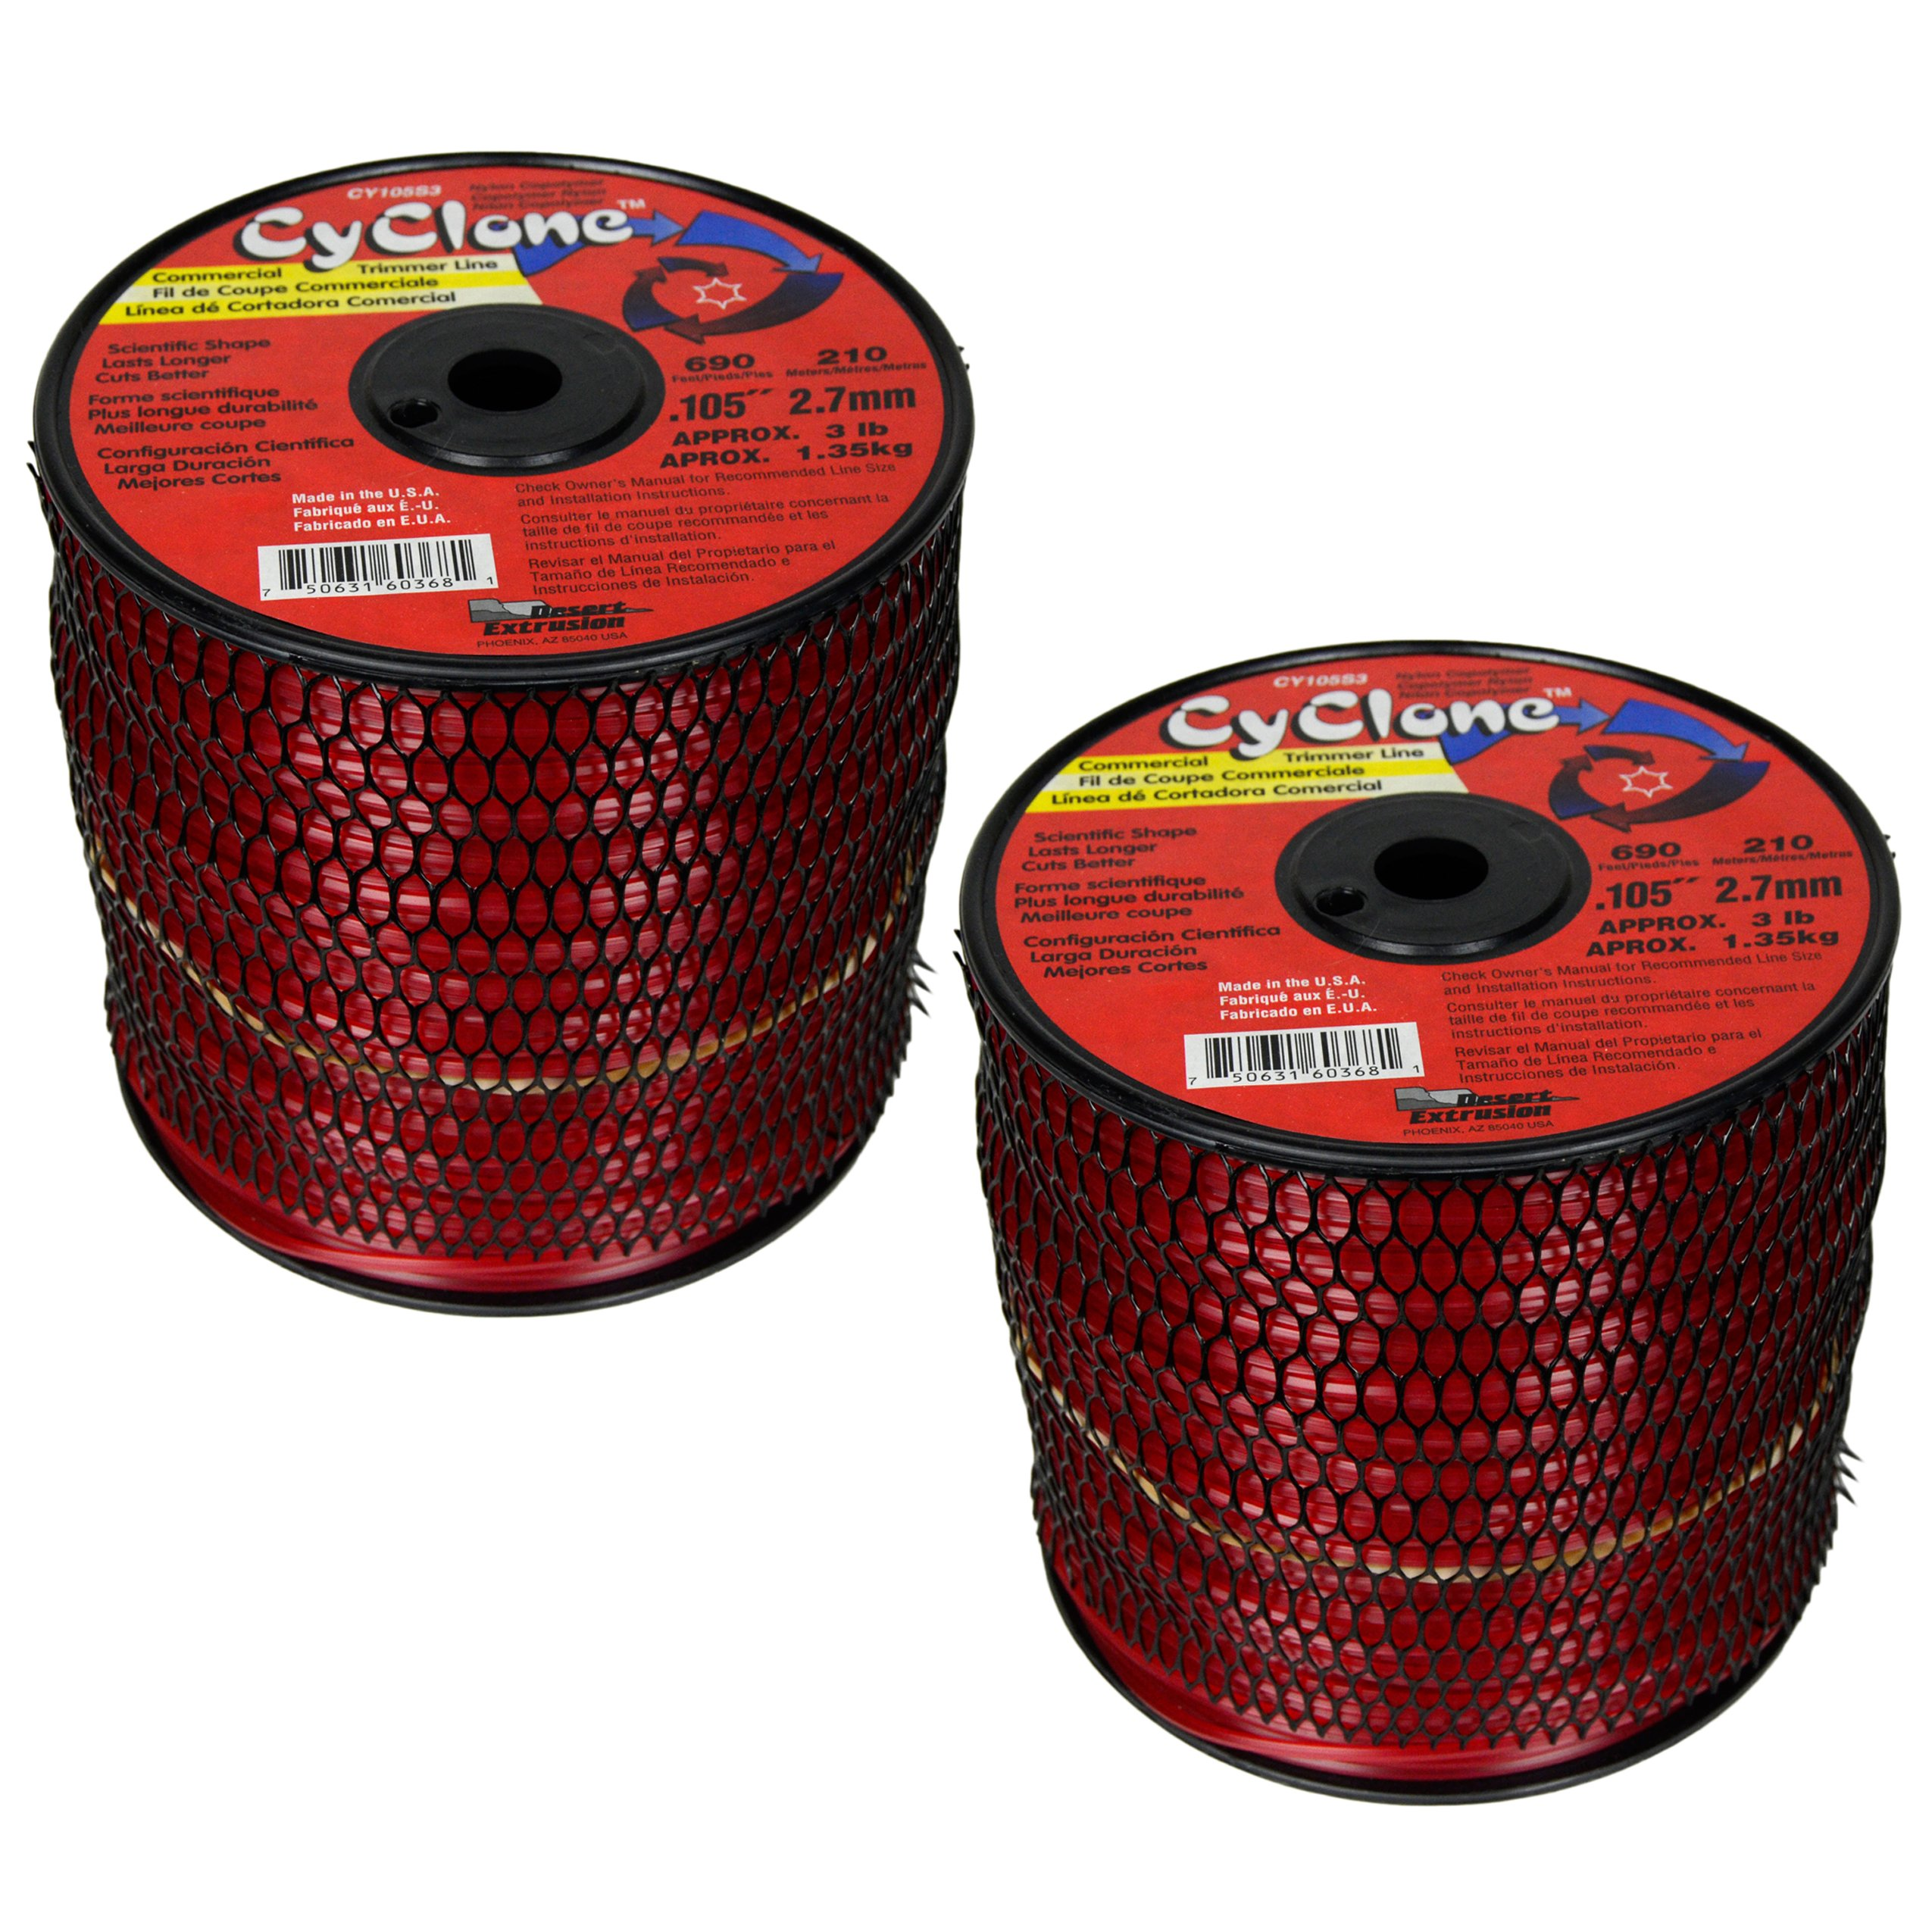 Desert Extrusion Cyclone CY105S3 .105'' x690' Commercial Line Red [2/Case] (2-Pack)